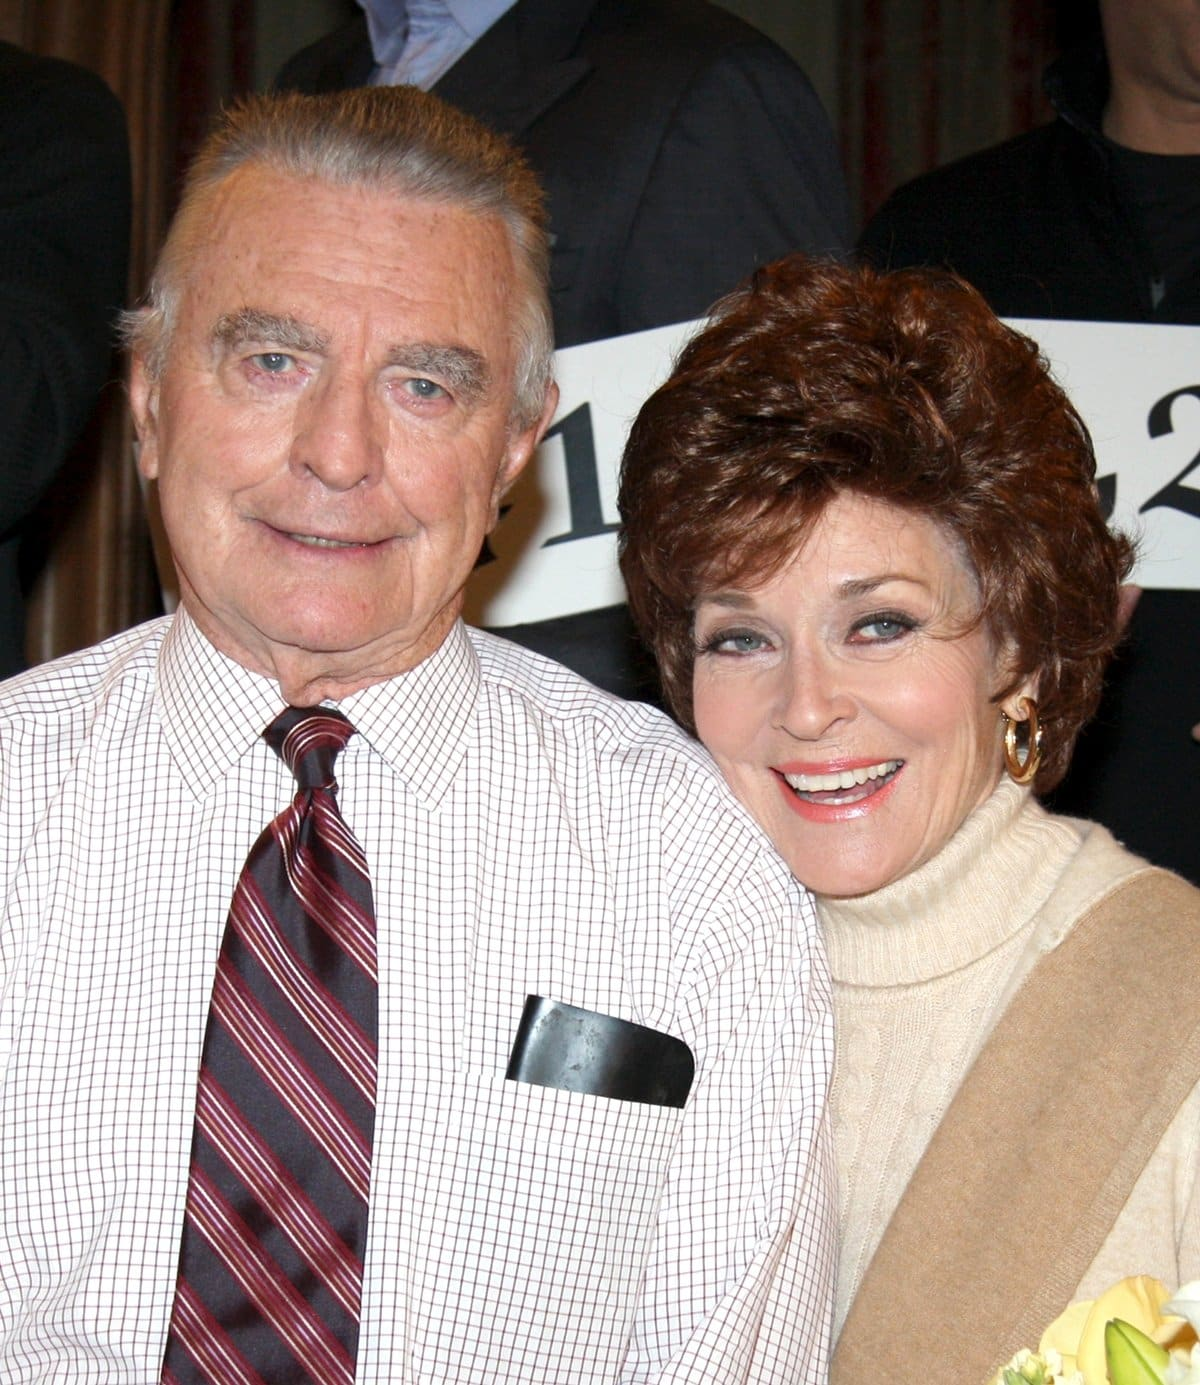 Beloved actor Raymond MacDonnell, best known for his role as Dr. Joe Martin on the daytime soap opera All My Children, pictured with his on-screen wife Lee Meriwether